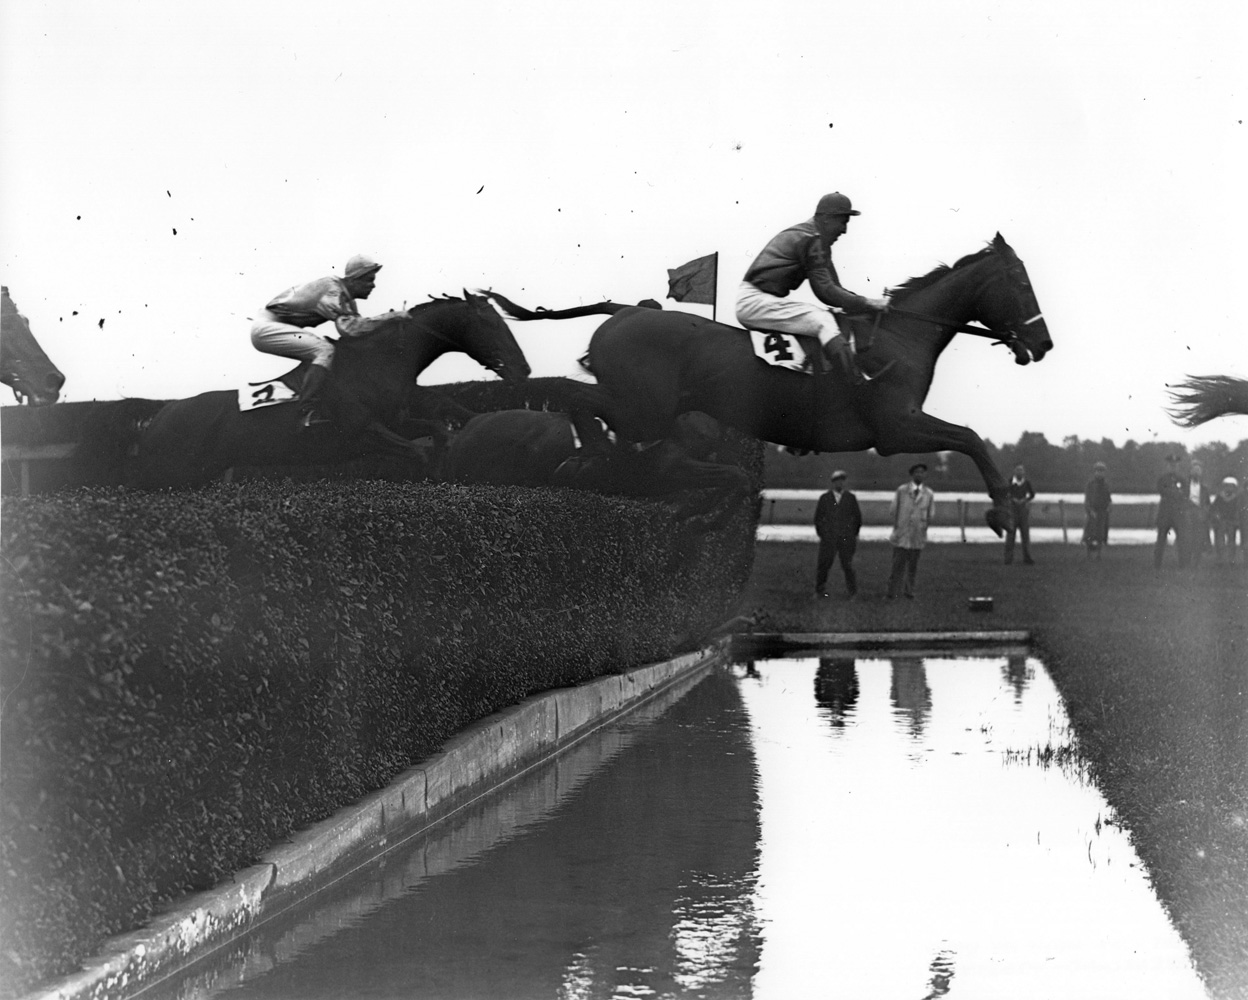 Battleship (Carroll K. Bassett up) clearing a water jump in the American Grand National Steeplechase at Belmont Park (Keeneland Library Morgan Collection/Museum Collection)